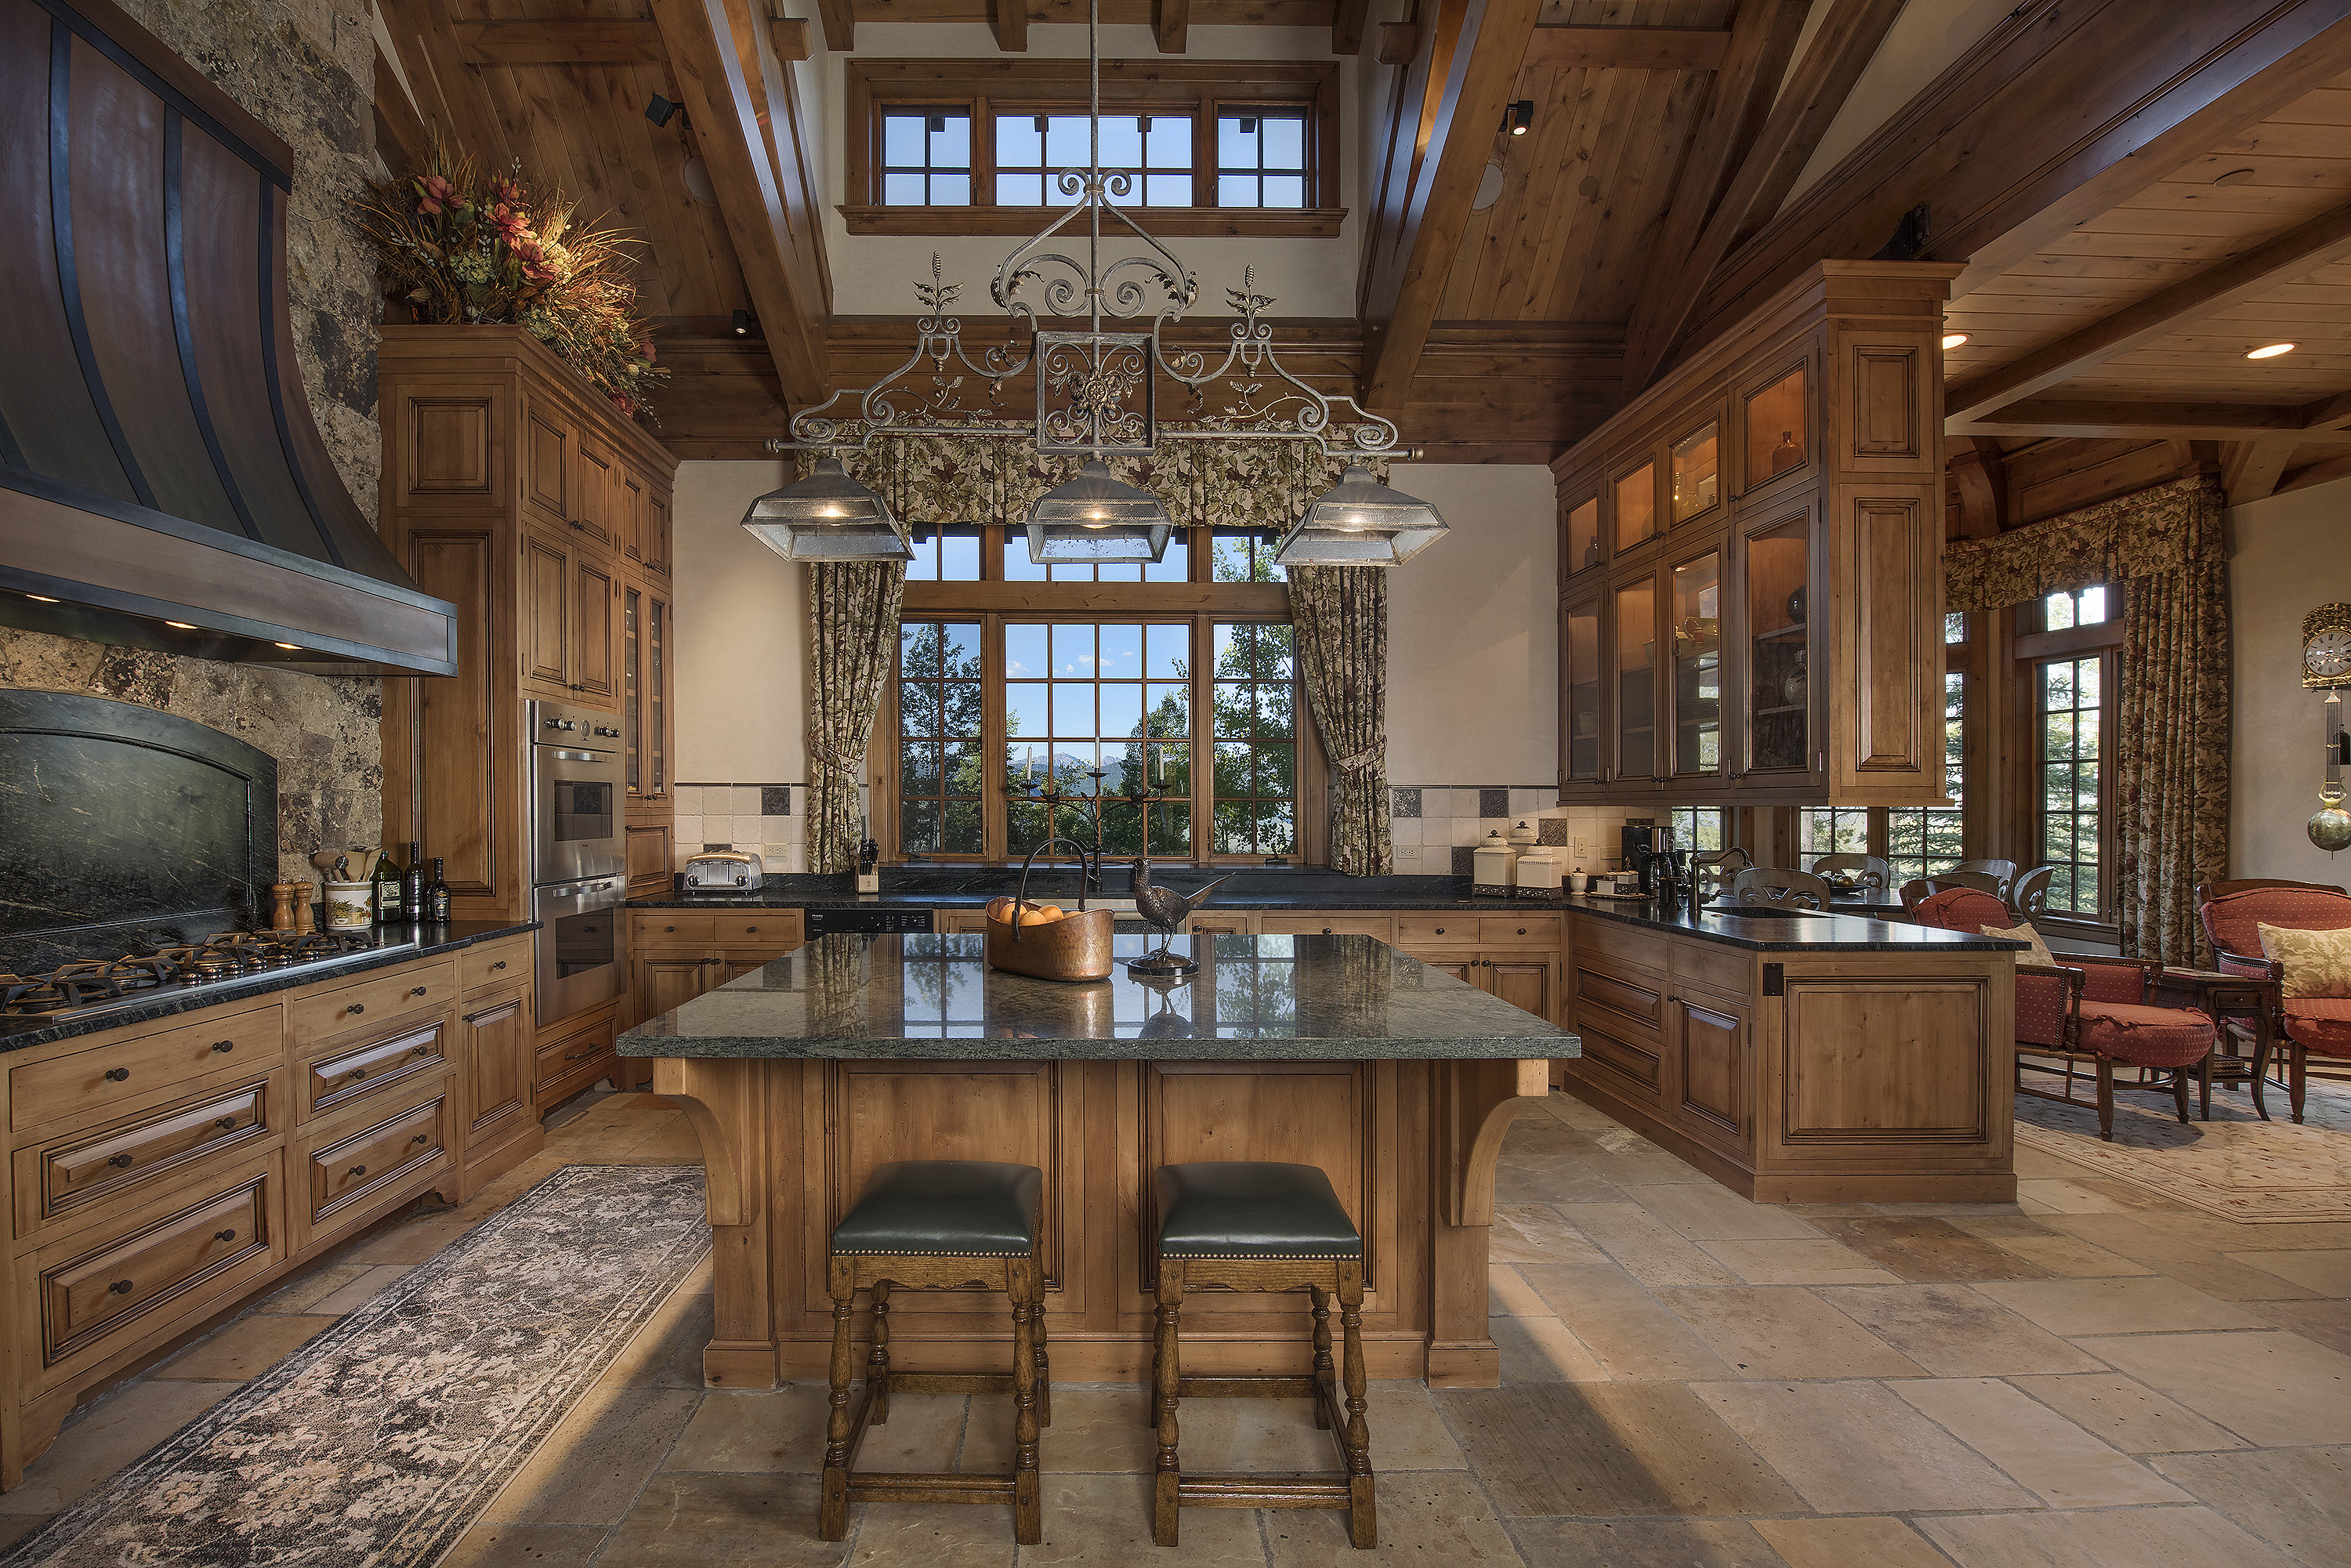 Views and aesthetics were not left behind in the meticulous design of this extravagant kitchen.